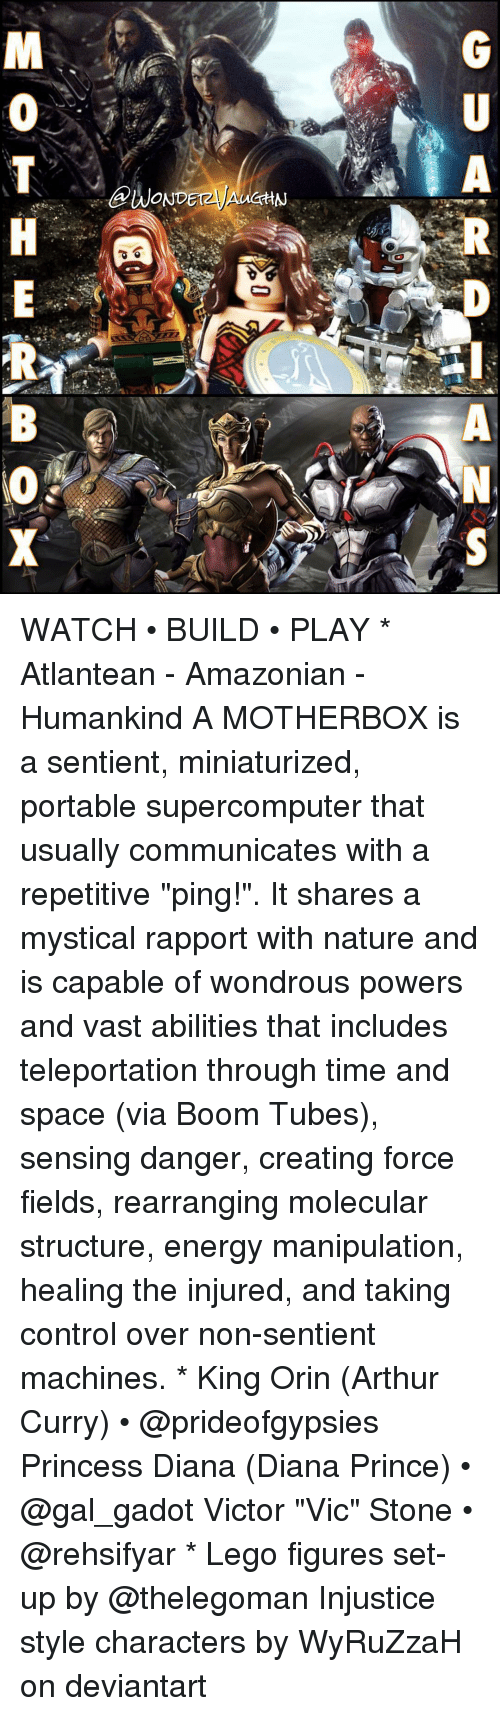 "Arthur, Energy, and Lego: A  @WONDETzyAUCHN  GU  RP-ANS  MOTH E  RB (O X WATCH • BUILD • PLAY * Atlantean - Amazonian - Humankind A MOTHERBOX is a sentient, miniaturized, portable supercomputer that usually communicates with a repetitive ""ping!"". It shares a mystical rapport with nature and is capable of wondrous powers and vast abilities that includes teleportation through time and space (via Boom Tubes), sensing danger, creating force fields, rearranging molecular structure, energy manipulation, healing the injured, and taking control over non-sentient machines. * King Orin (Arthur Curry) • @prideofgypsies Princess Diana (Diana Prince) • @gal_gadot Victor ""Vic"" Stone • @rehsifyar * Lego figures set-up by @thelegoman Injustice style characters by WyRuZzaH on deviantart"